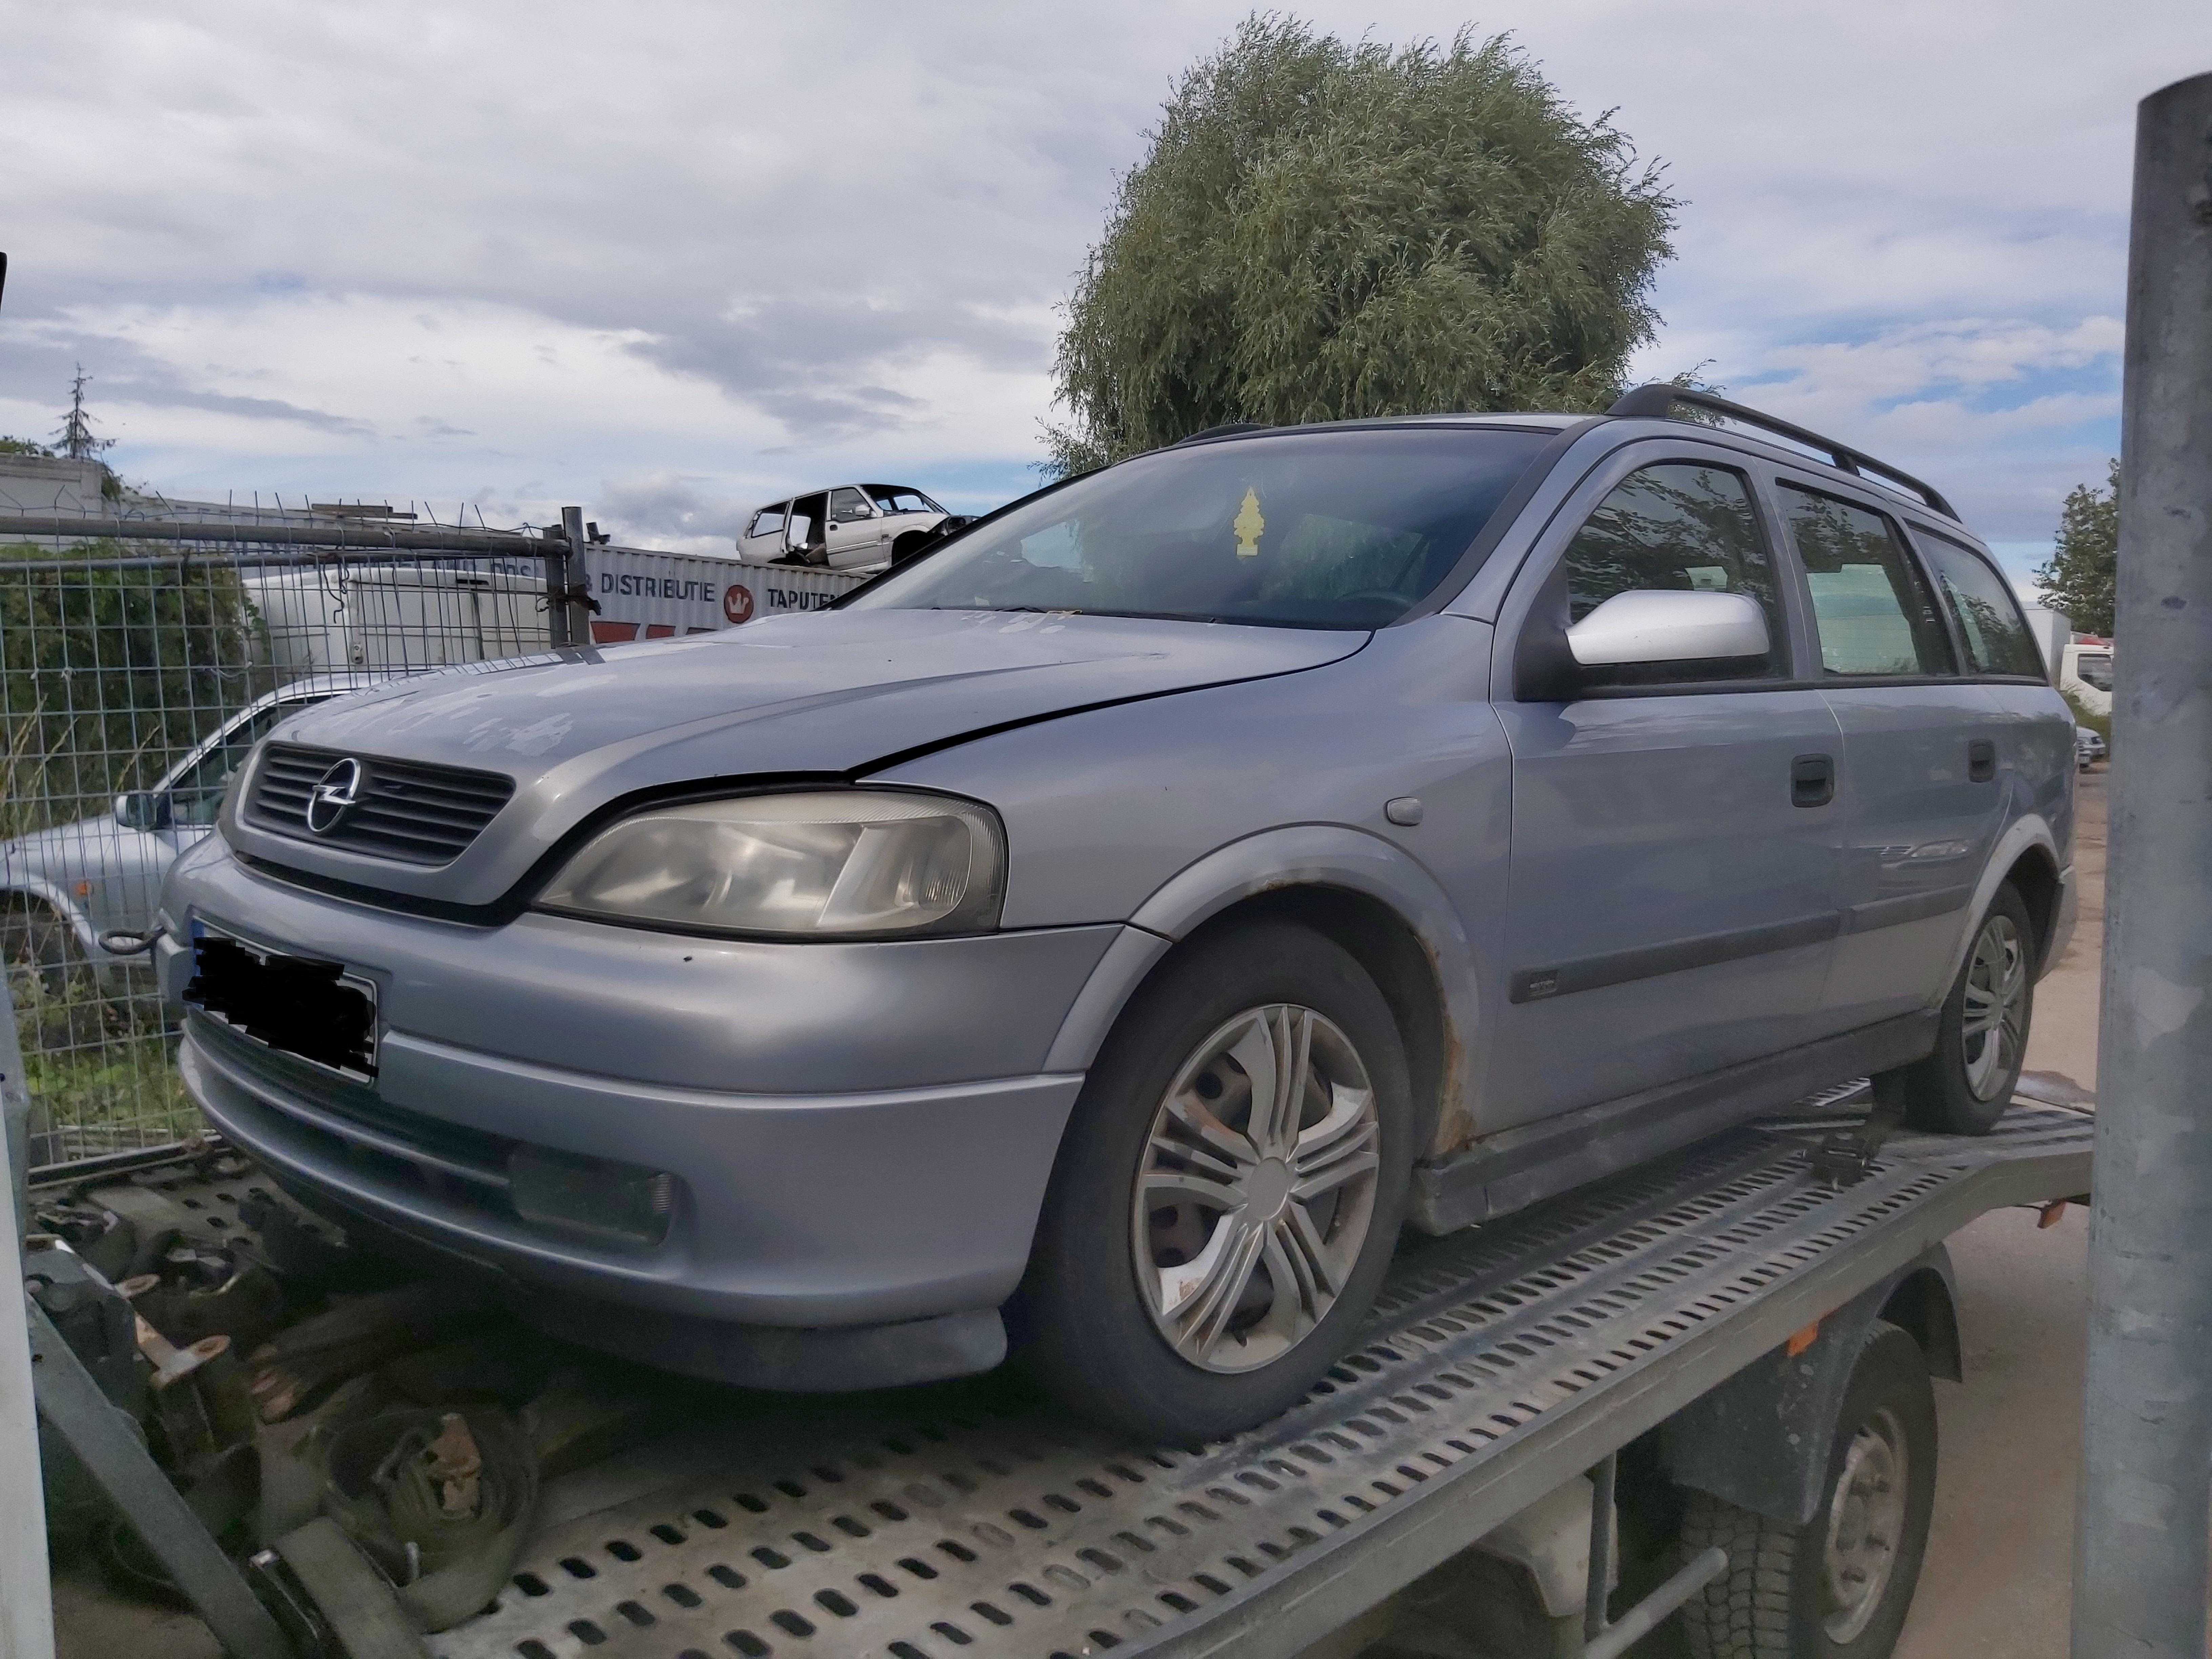 Used Car Parts Foto 2 Opel ASTRA 2000 2.0 Mechanical Universal 4/5 d. Grey 2020-7-30 A5479